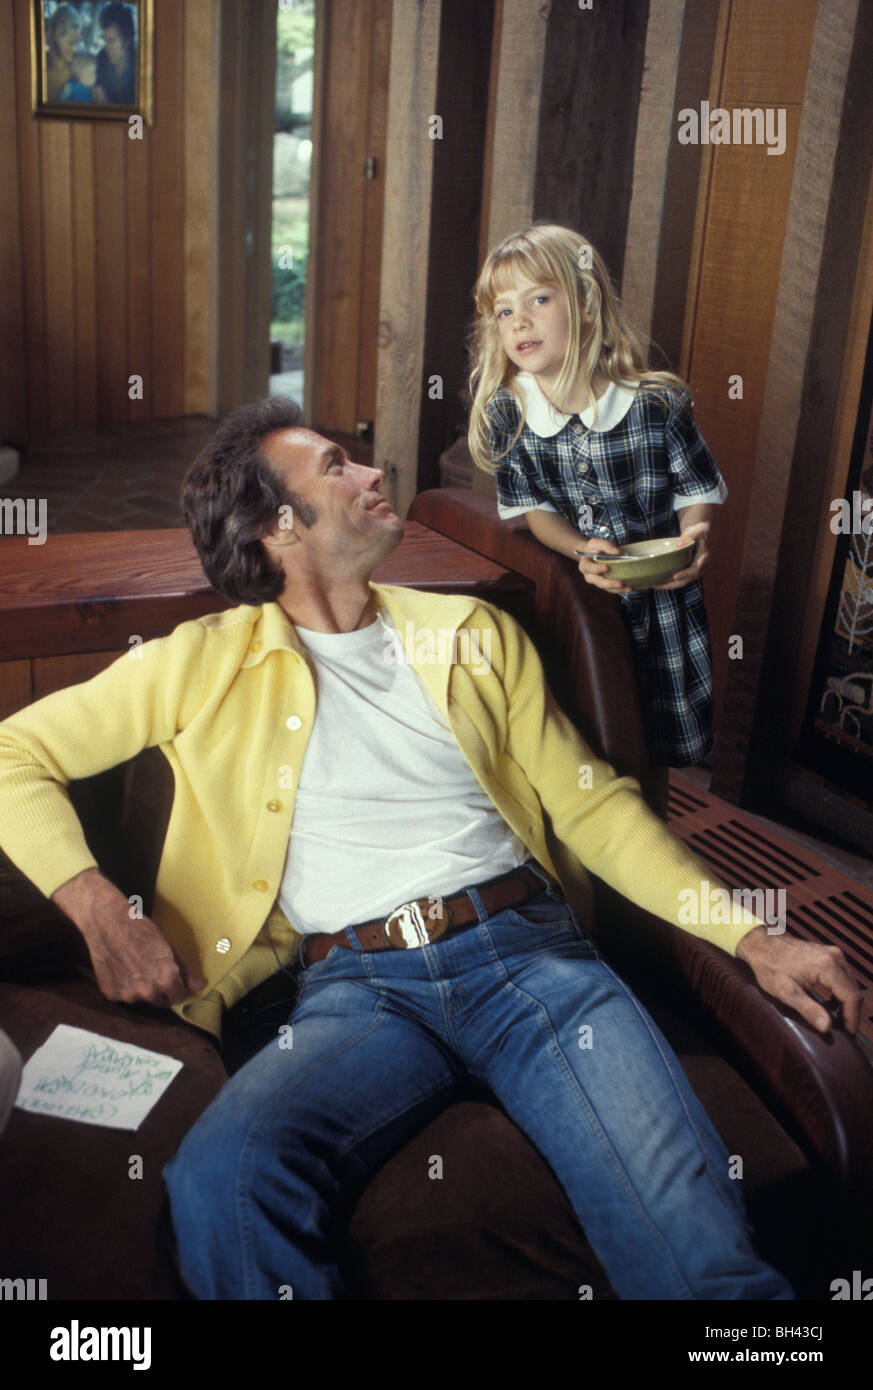 Clint Eastwood and daughter Alison at home in Pebble Beach Carmel California in the late 1970s - Stock Image